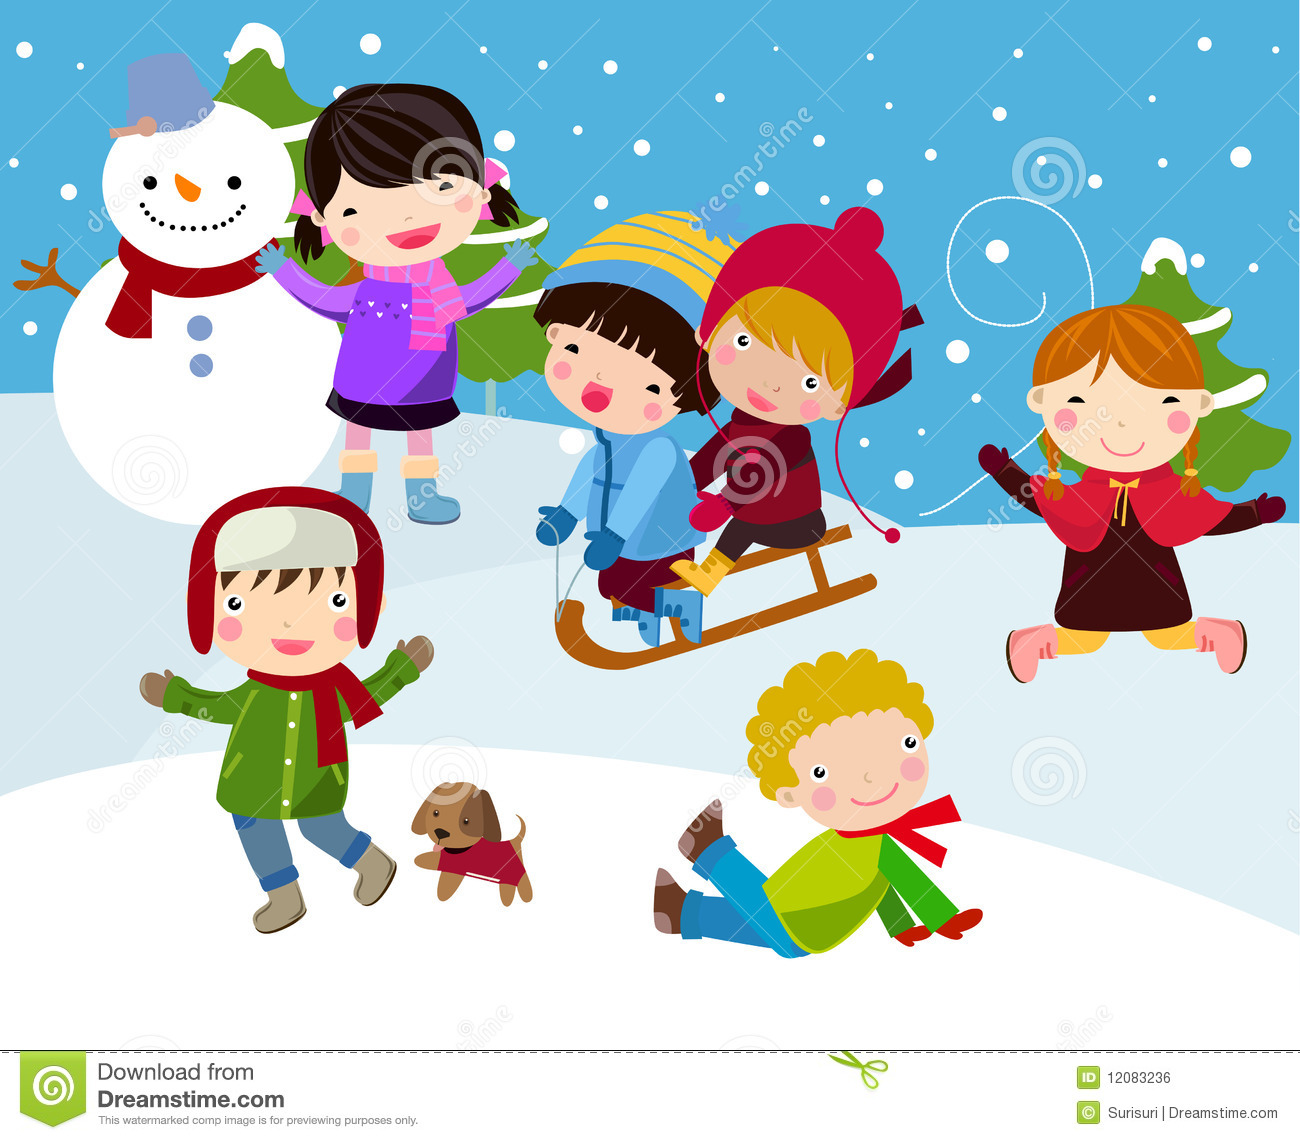 Fight clipart snow Snow Clip Playing The Kids